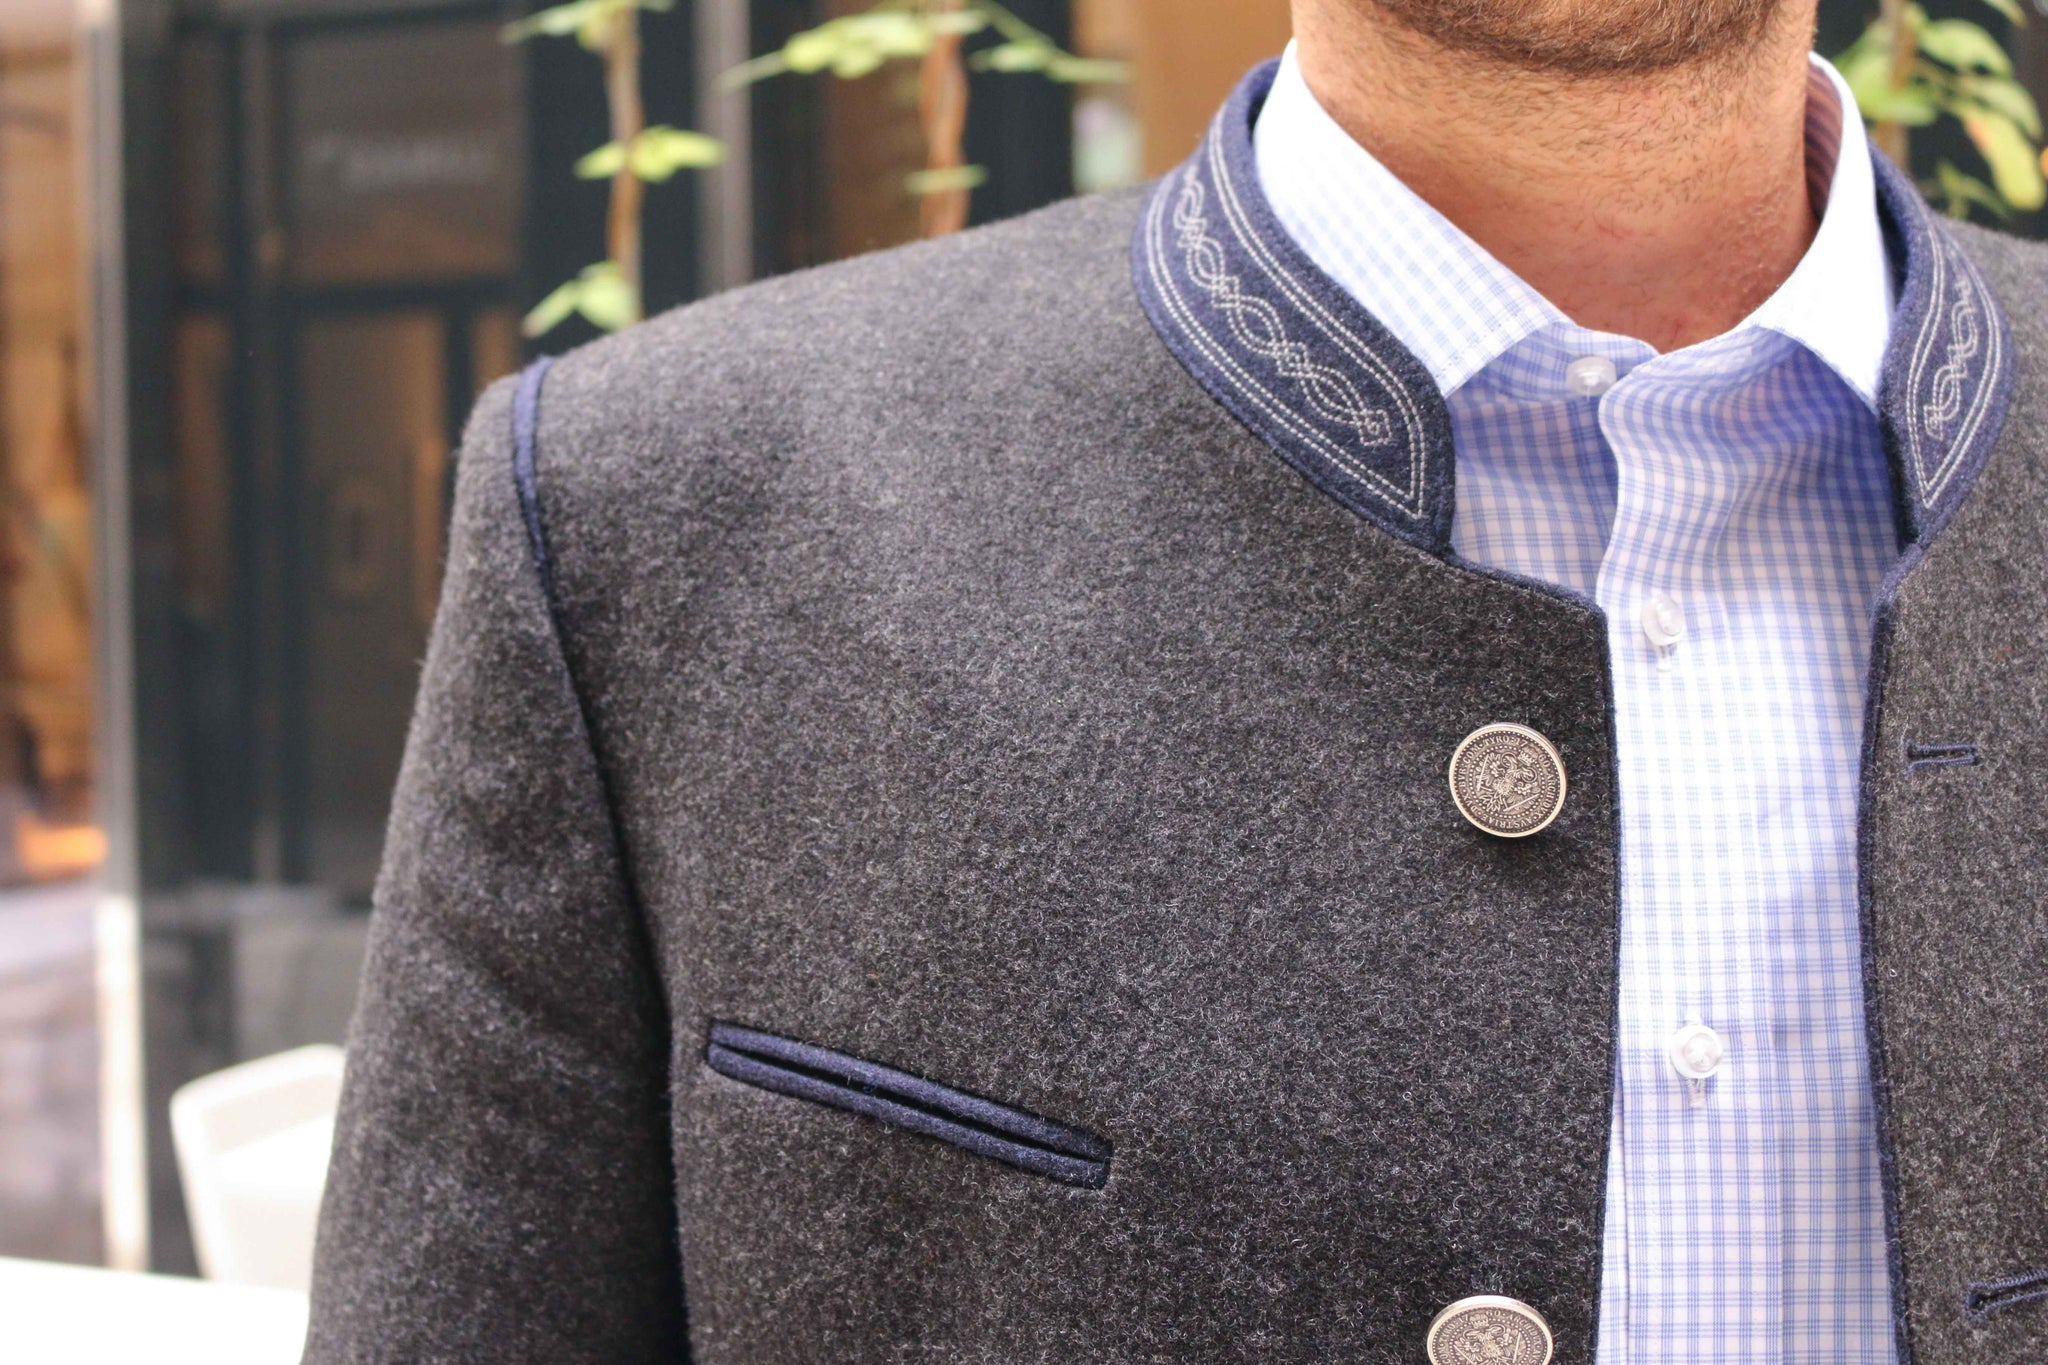 Robert W. Stolz loden wool jacket with stitched collar and metal buttons